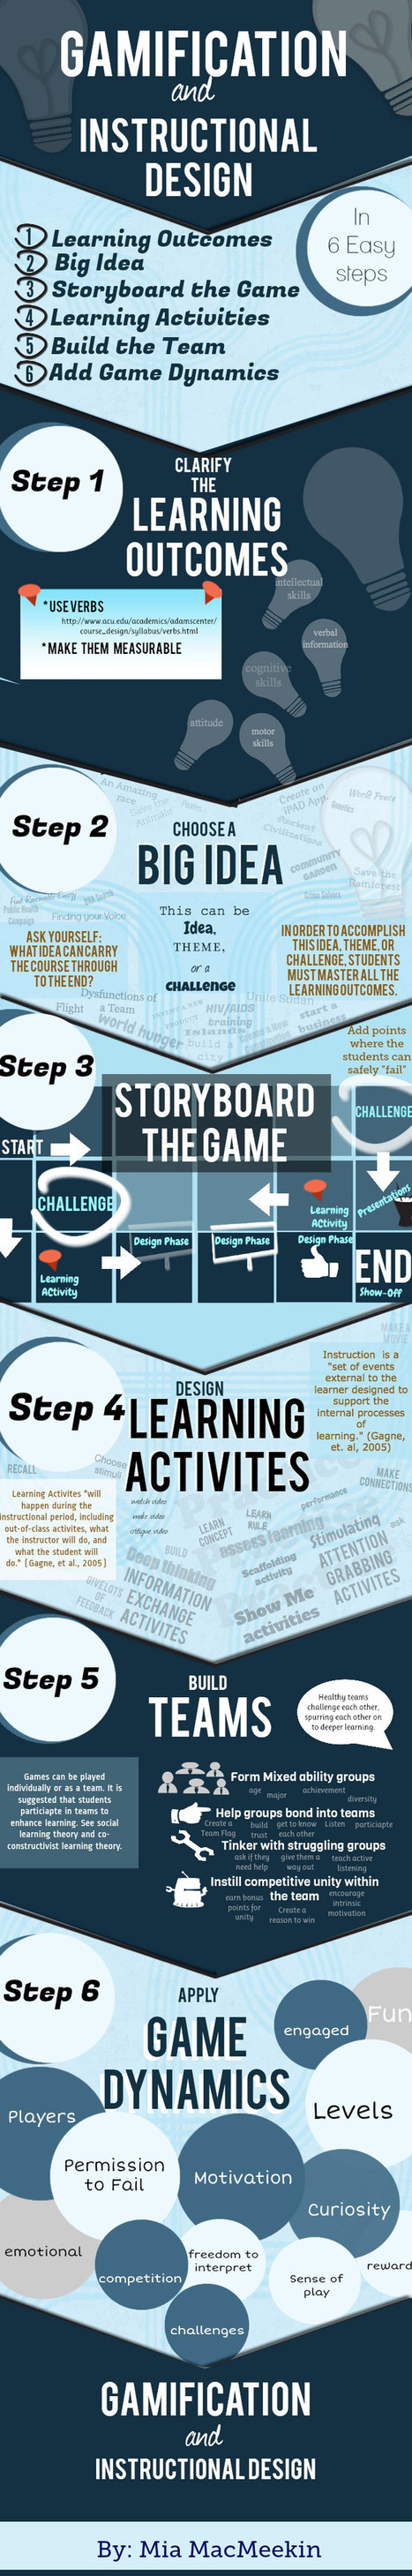 Gamification And Instructional Design | Games and Learning | Scoop.it